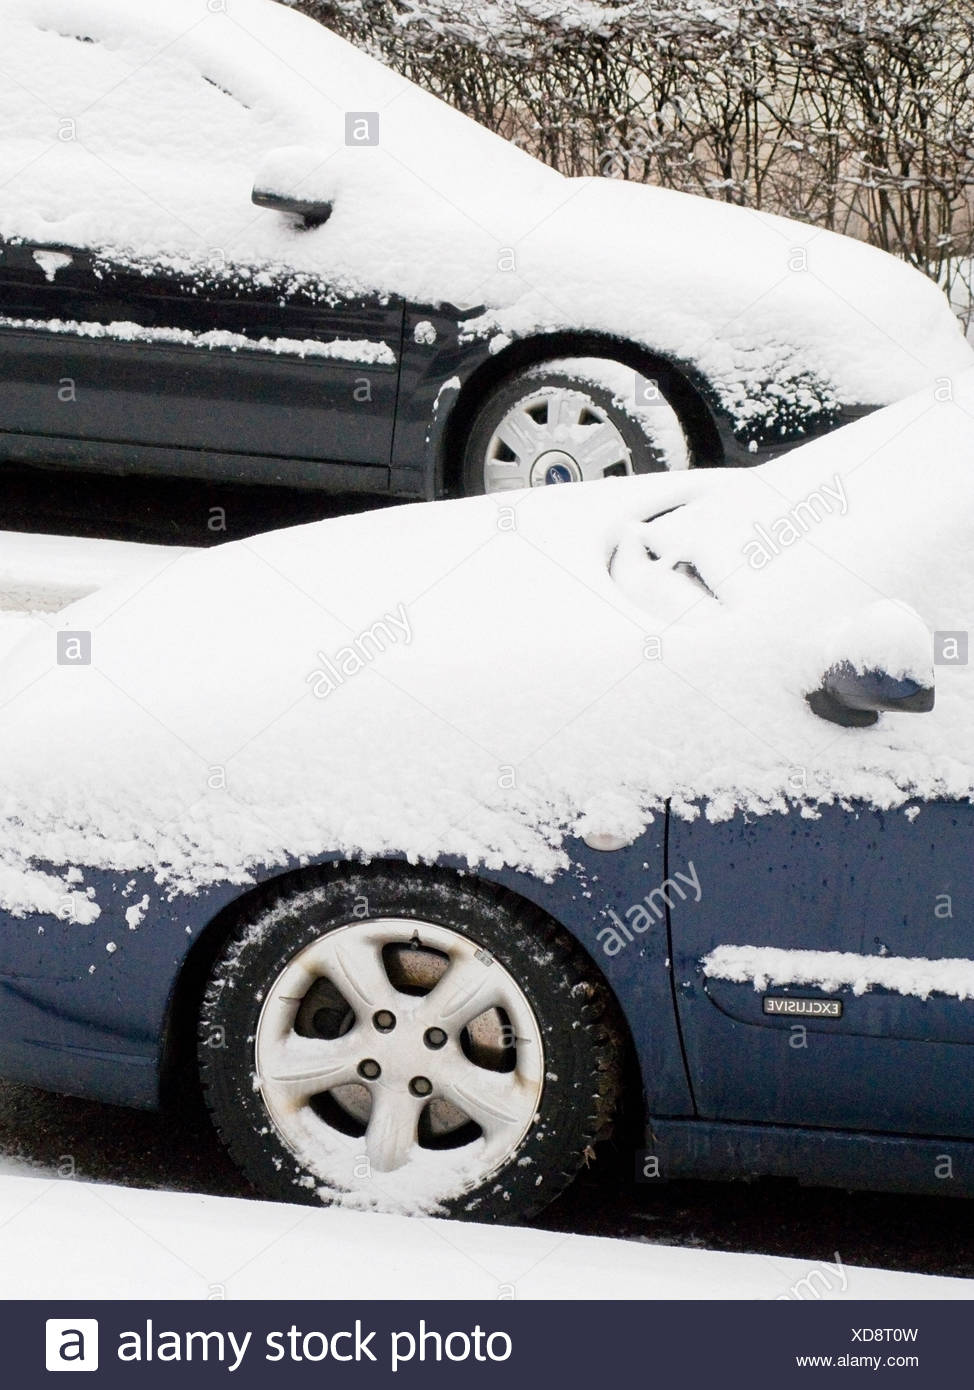 Cars covered in snow - Stock Image